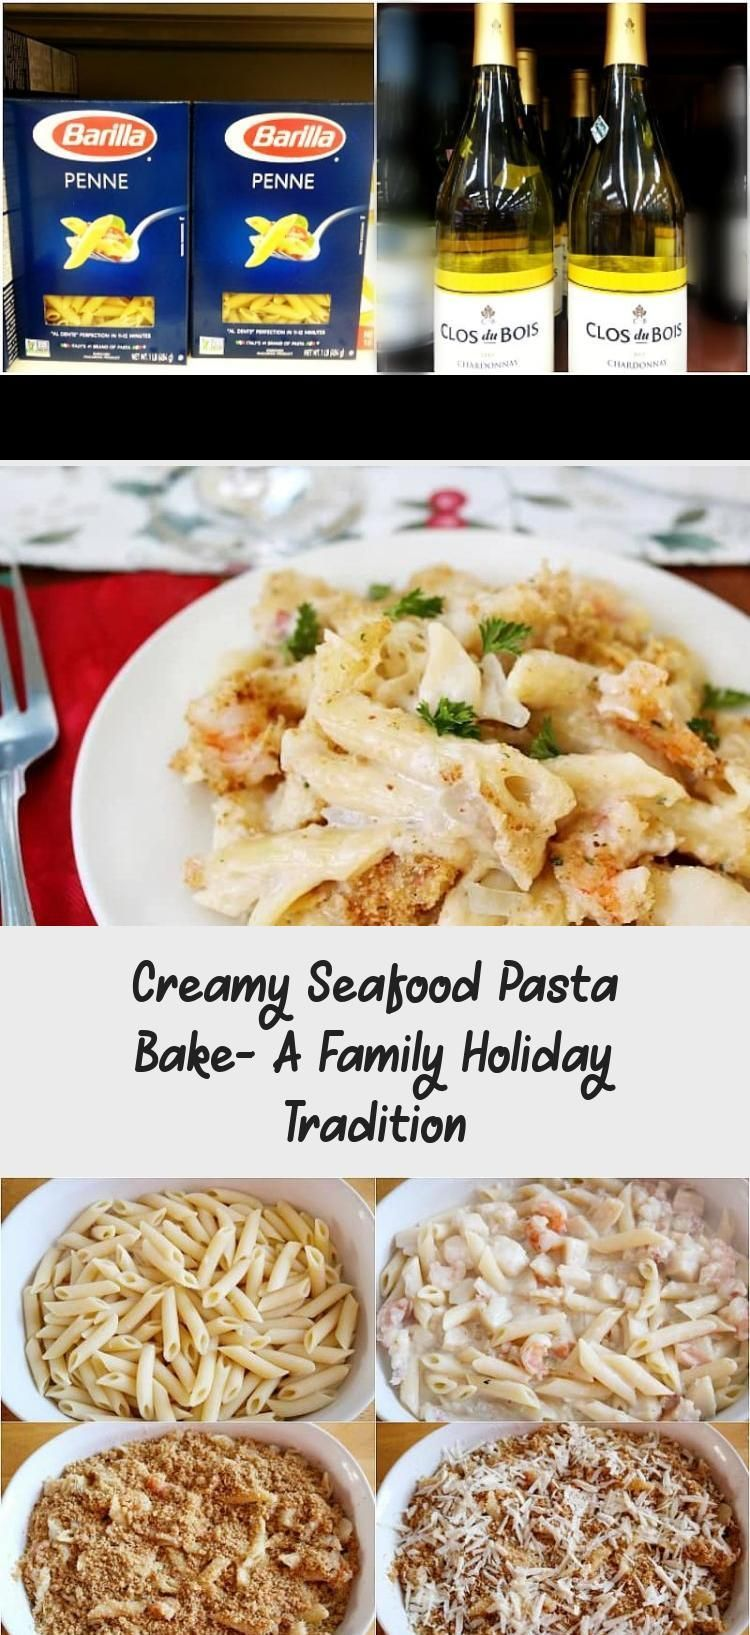 Creamy Seafood Pasta Bake- A Family Holiday Tradition #seafoodrecipeTuna #seafoo...,  #Bake #Creamy #Family #freshseafood #Holiday #Pasta #seafoo #Seafood #seafoodbake #seafoodcasserole #seafoodchowder #seafoodrecipeTuna #Tradition